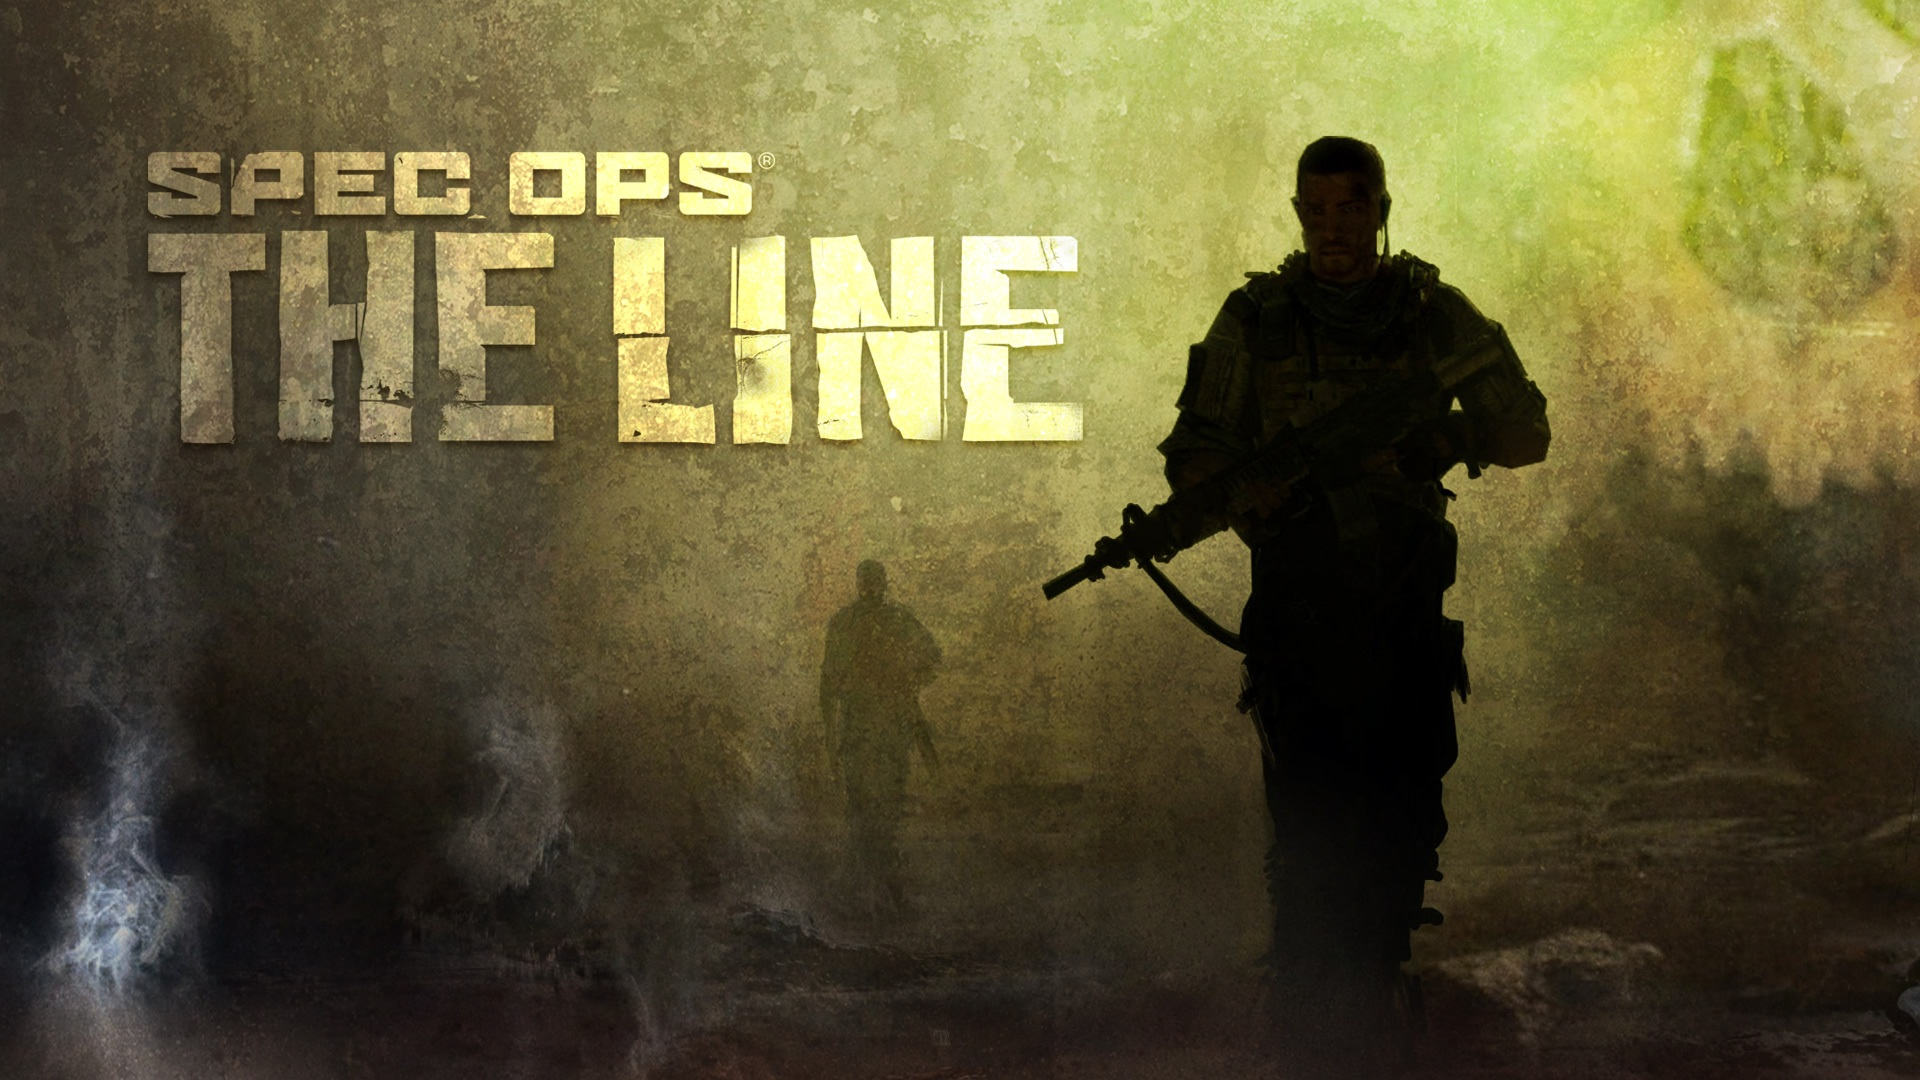 Special Ops Wallpaper